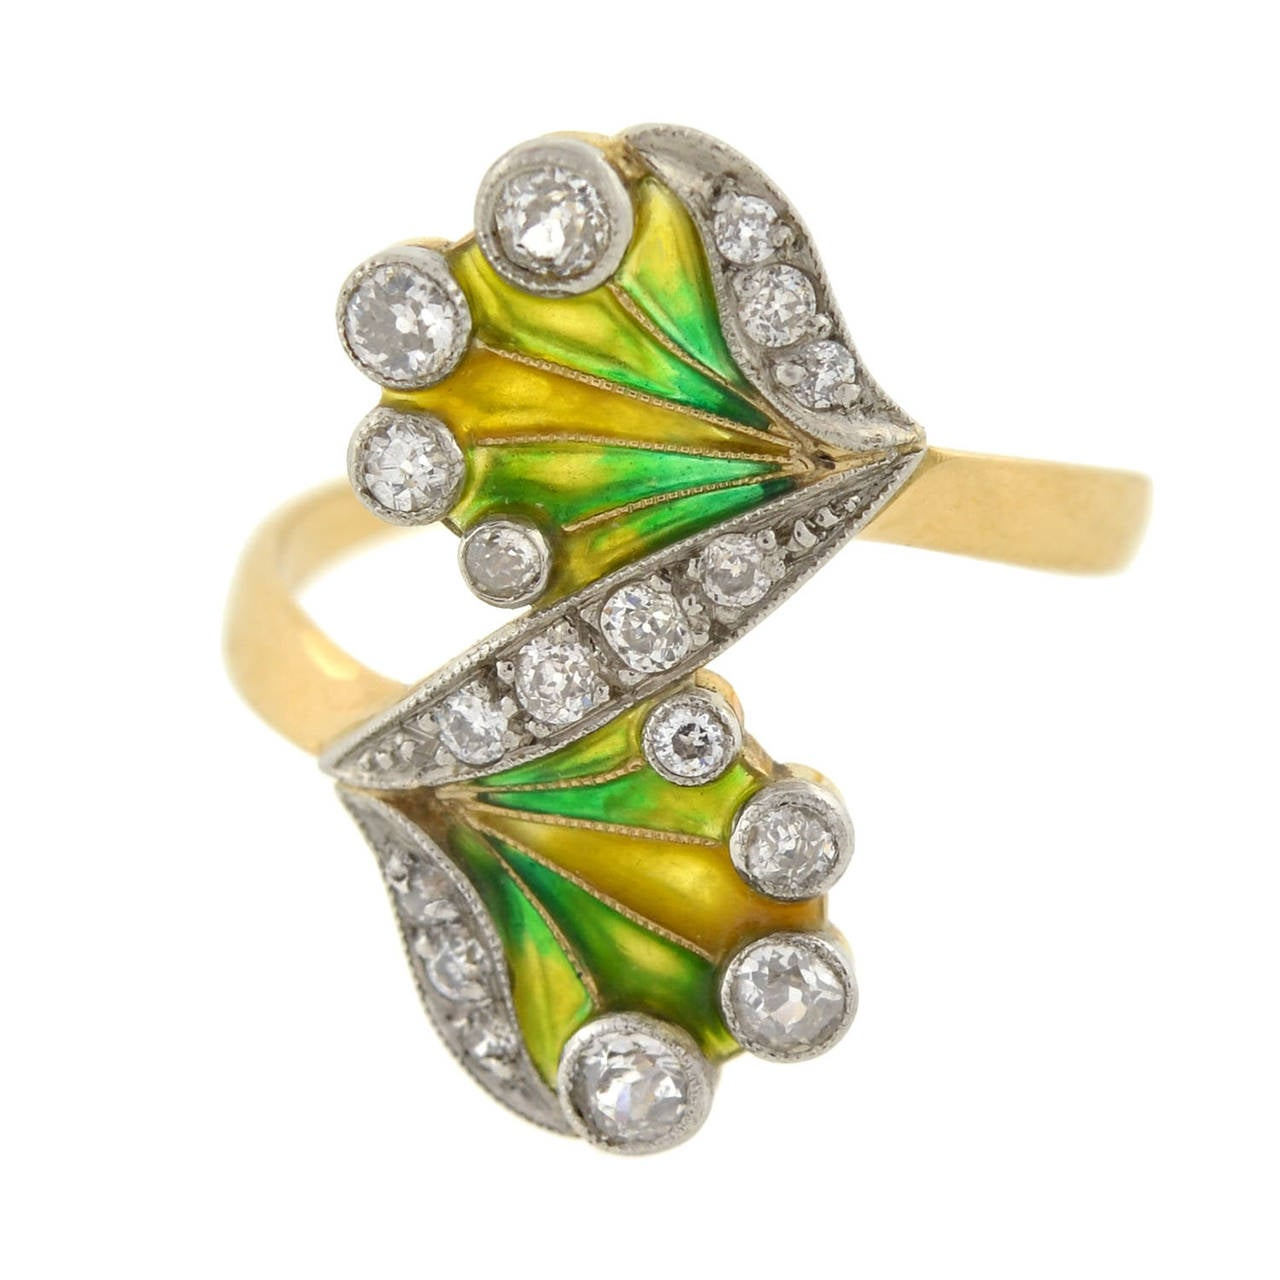 Art Nouveau Plique à Jour Diamond Gold Ring In Excellent Condition For Sale In Narberth, PA